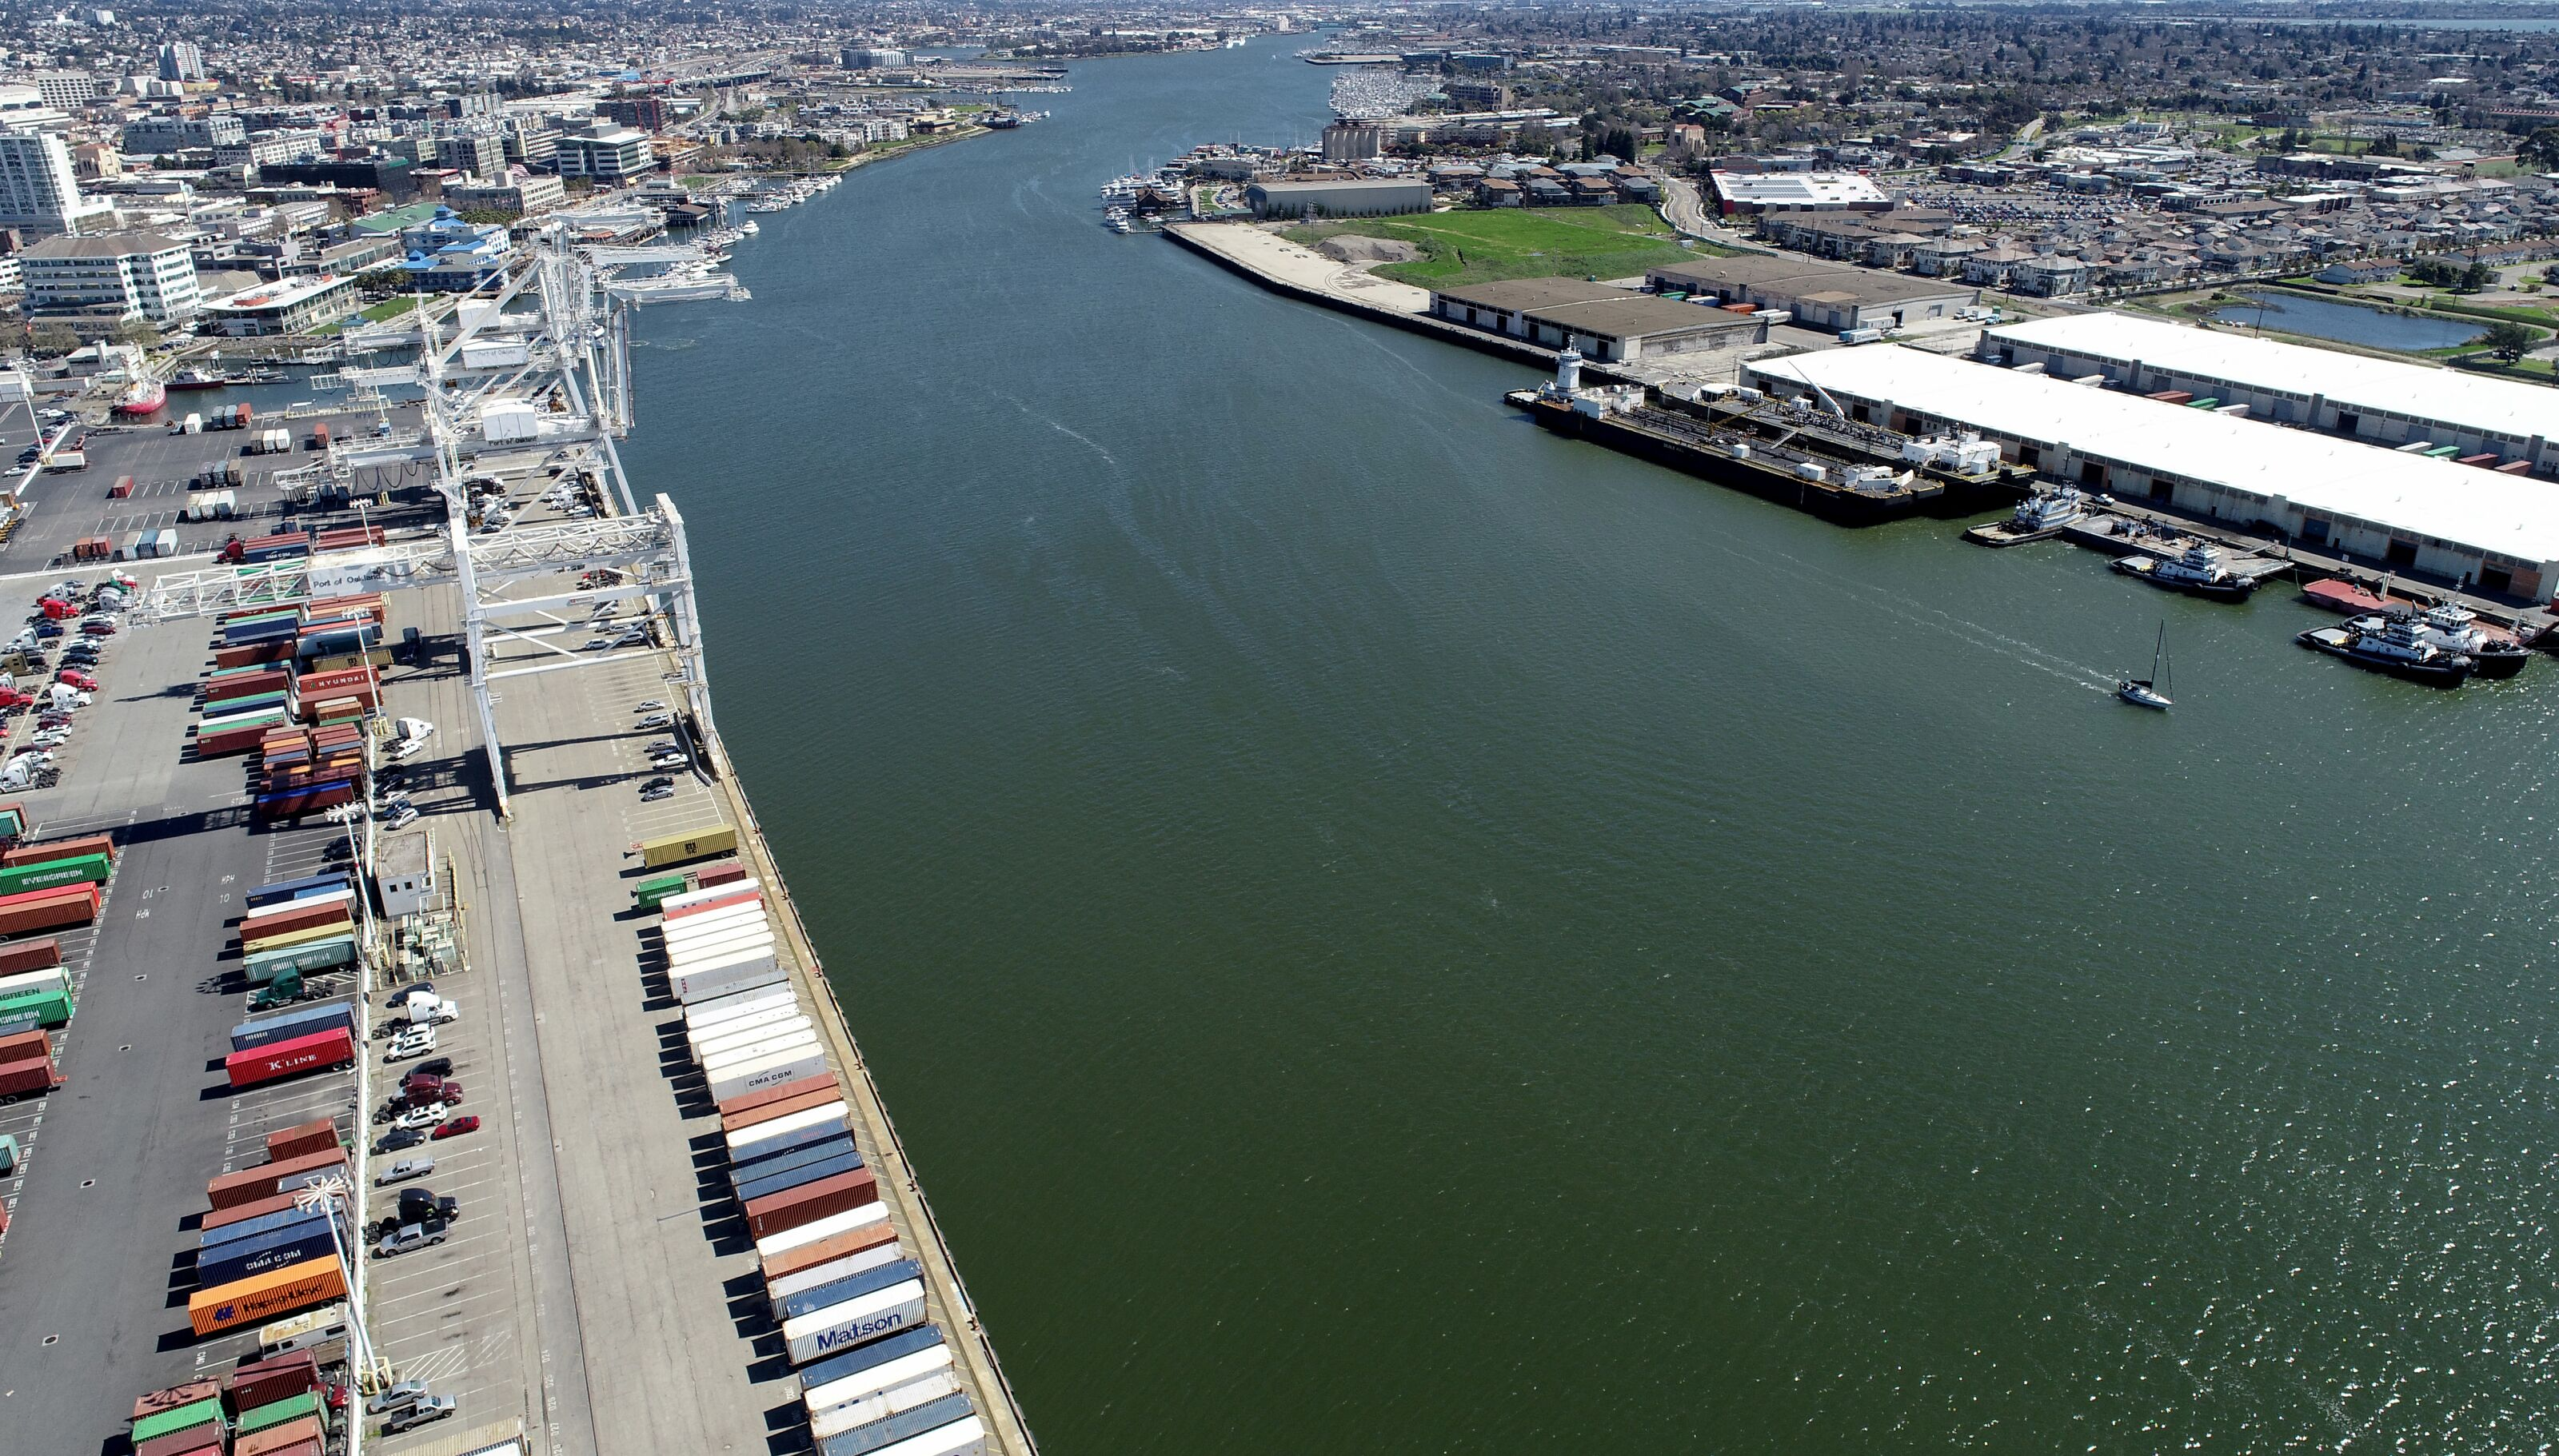 OAKLAND, CA - MARCH 13: Howard Terminal and the Oakland Estuary are seen from this drone view in Oakland, Calif., on Wednesday, March 13, 2019. The site is being considered for the Oakland Athletics new ballpark and for housing on the northern side near Schnitzer Steel. (Photo by Jane Tyska/MediaNews Group/The Mercury News via Getty Images)